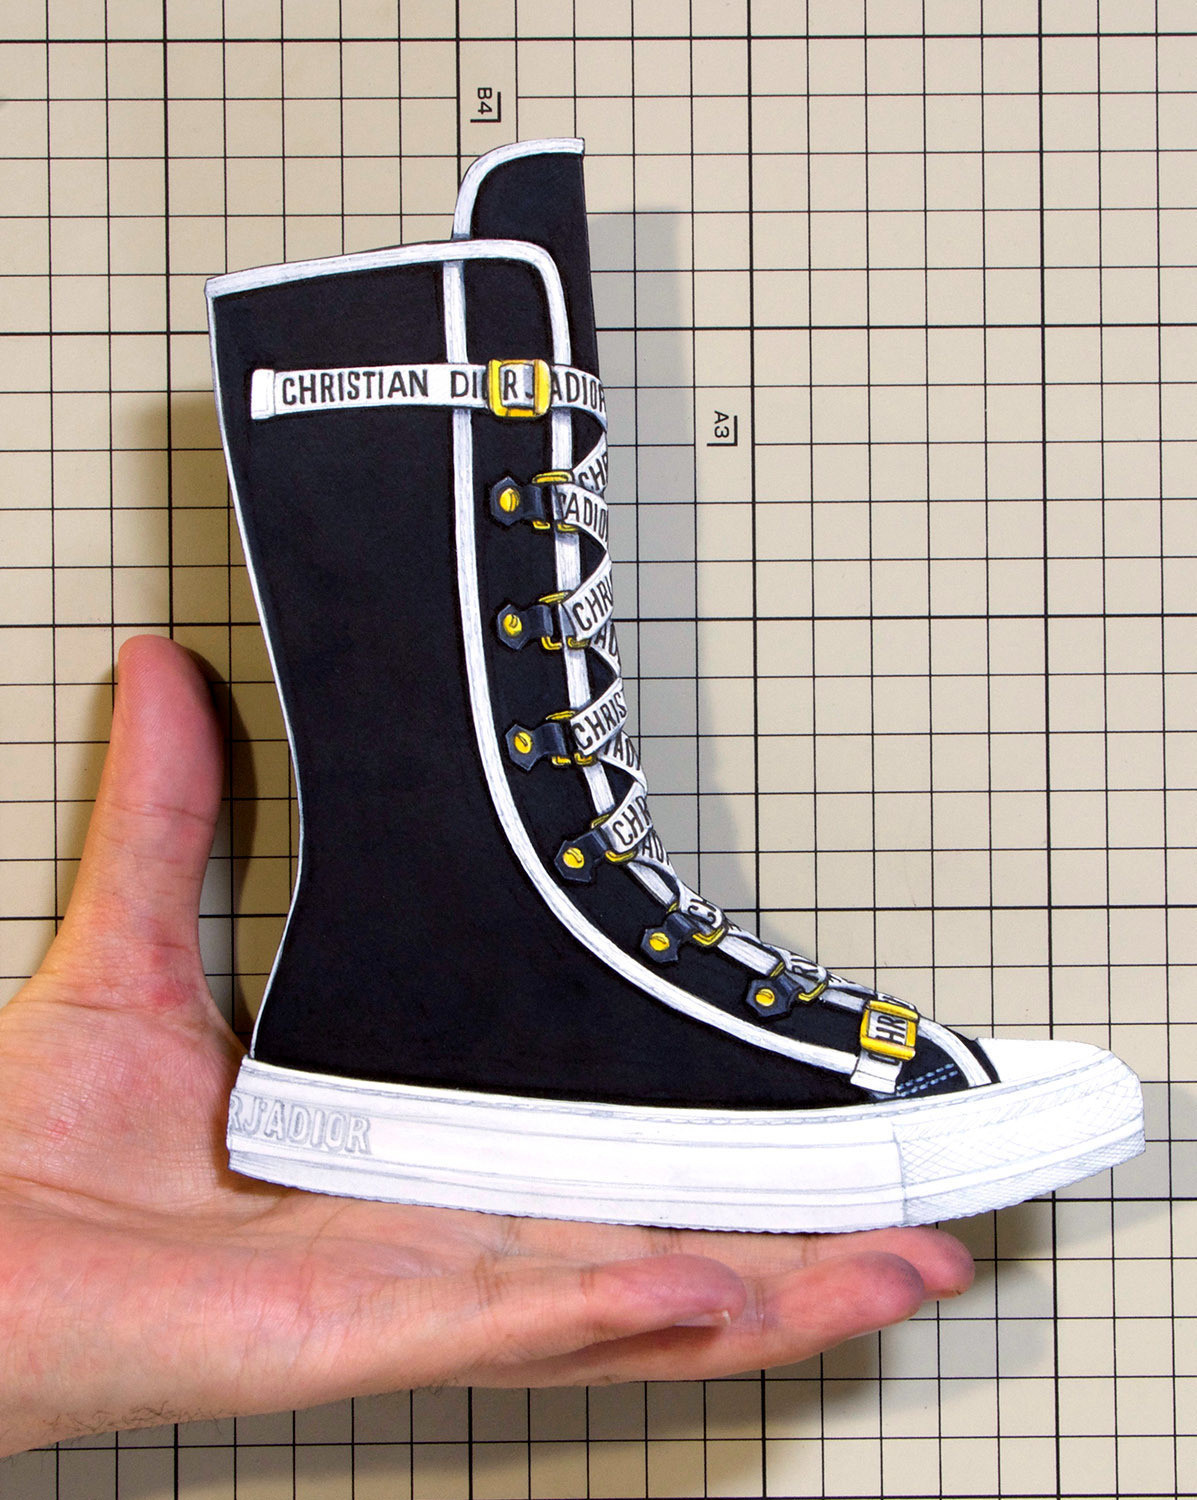 """Shoes:00864 """"Christian Dior"""" High-Top Trainer in Black Canvas Sneaker(Cruise 2018)"""